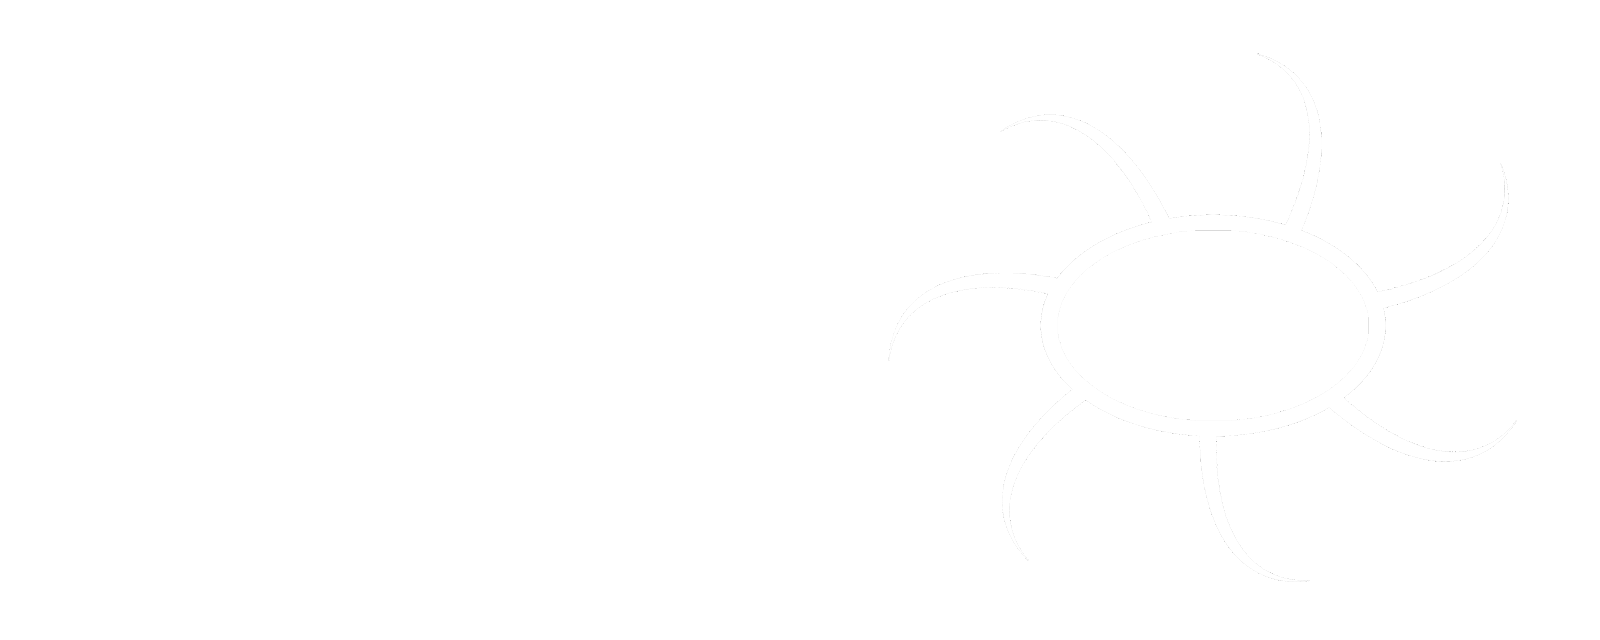 System Andromeda